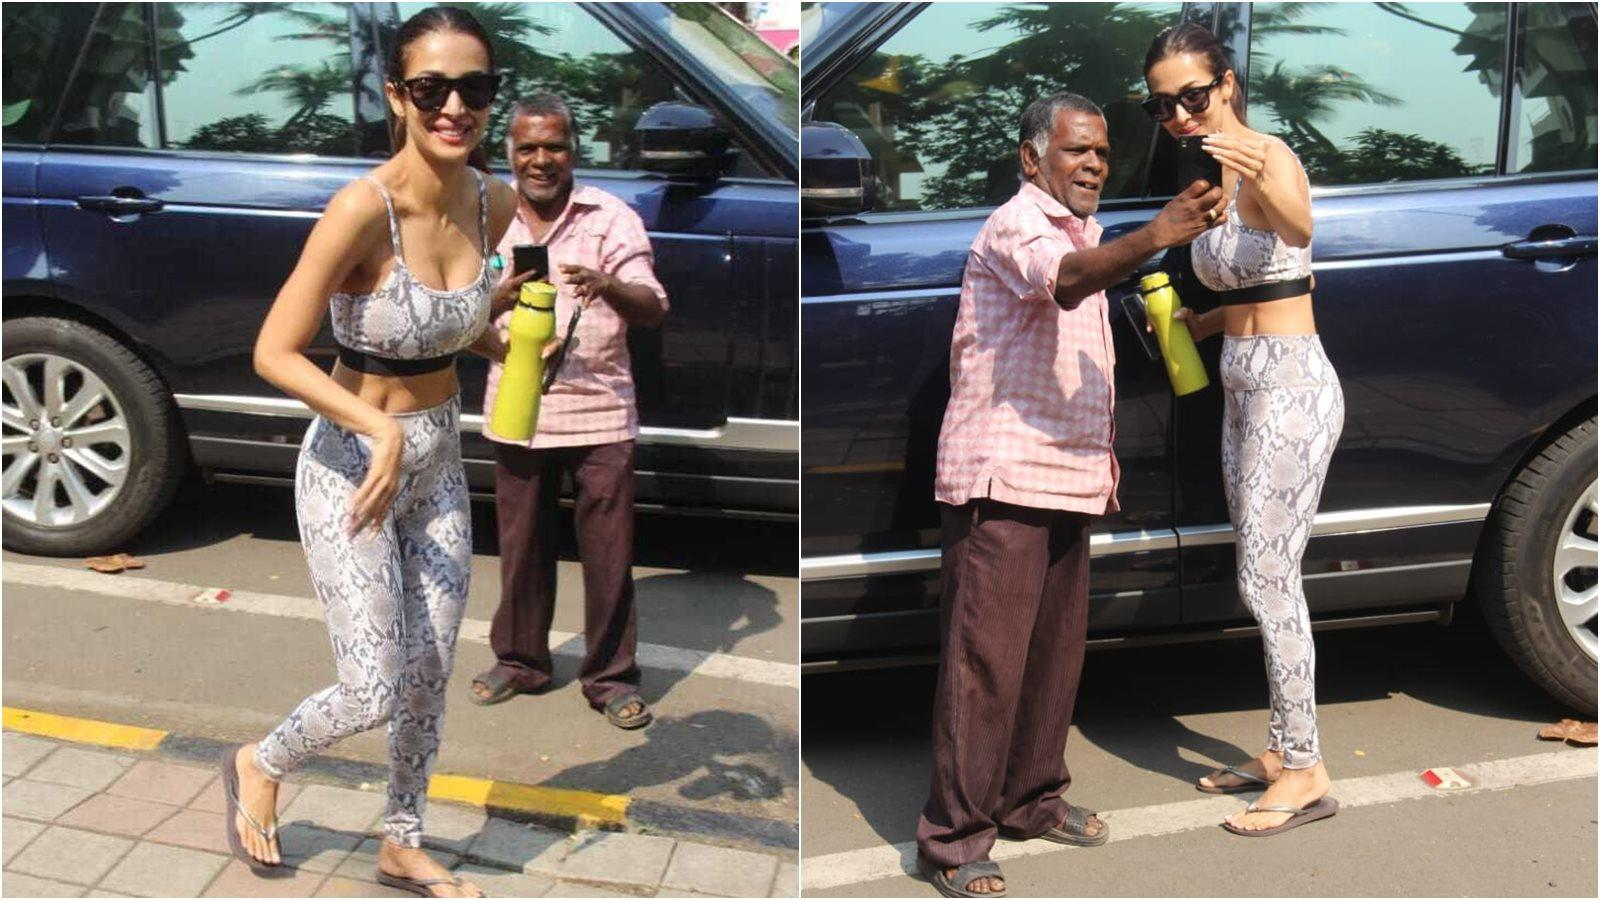 malaika-arora-makes-an-elderly-fan-happy-as-she-stops-by-for-a-selfie-on-her-way-to-the-gym